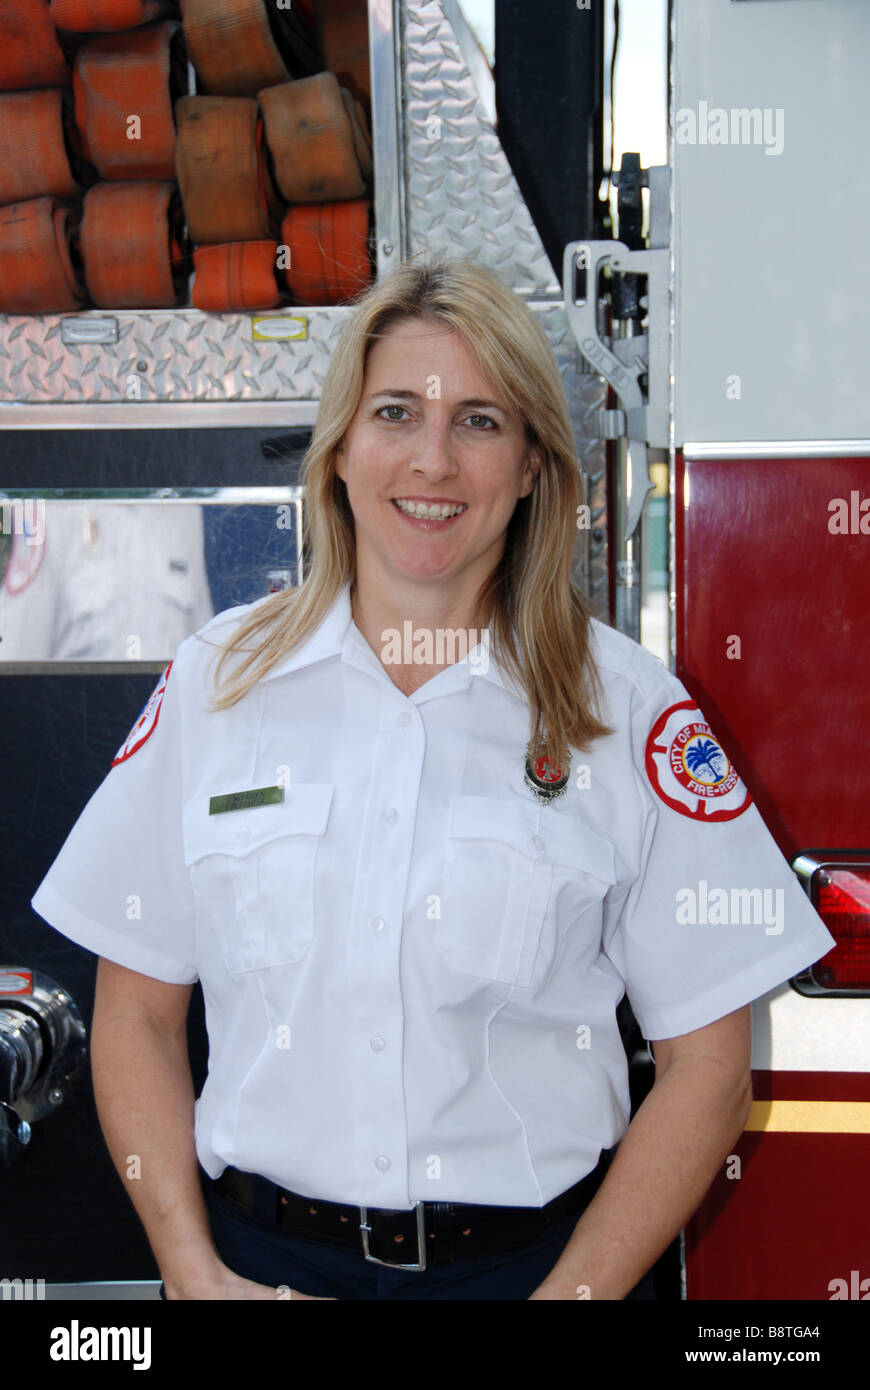 dating a firefighter paramedic I am dating a guy in the fdny for 2 almost 3 months now i am aware of the schedule, the bond with his brothers, the passion for the job i only encourage it and am very proud of him.